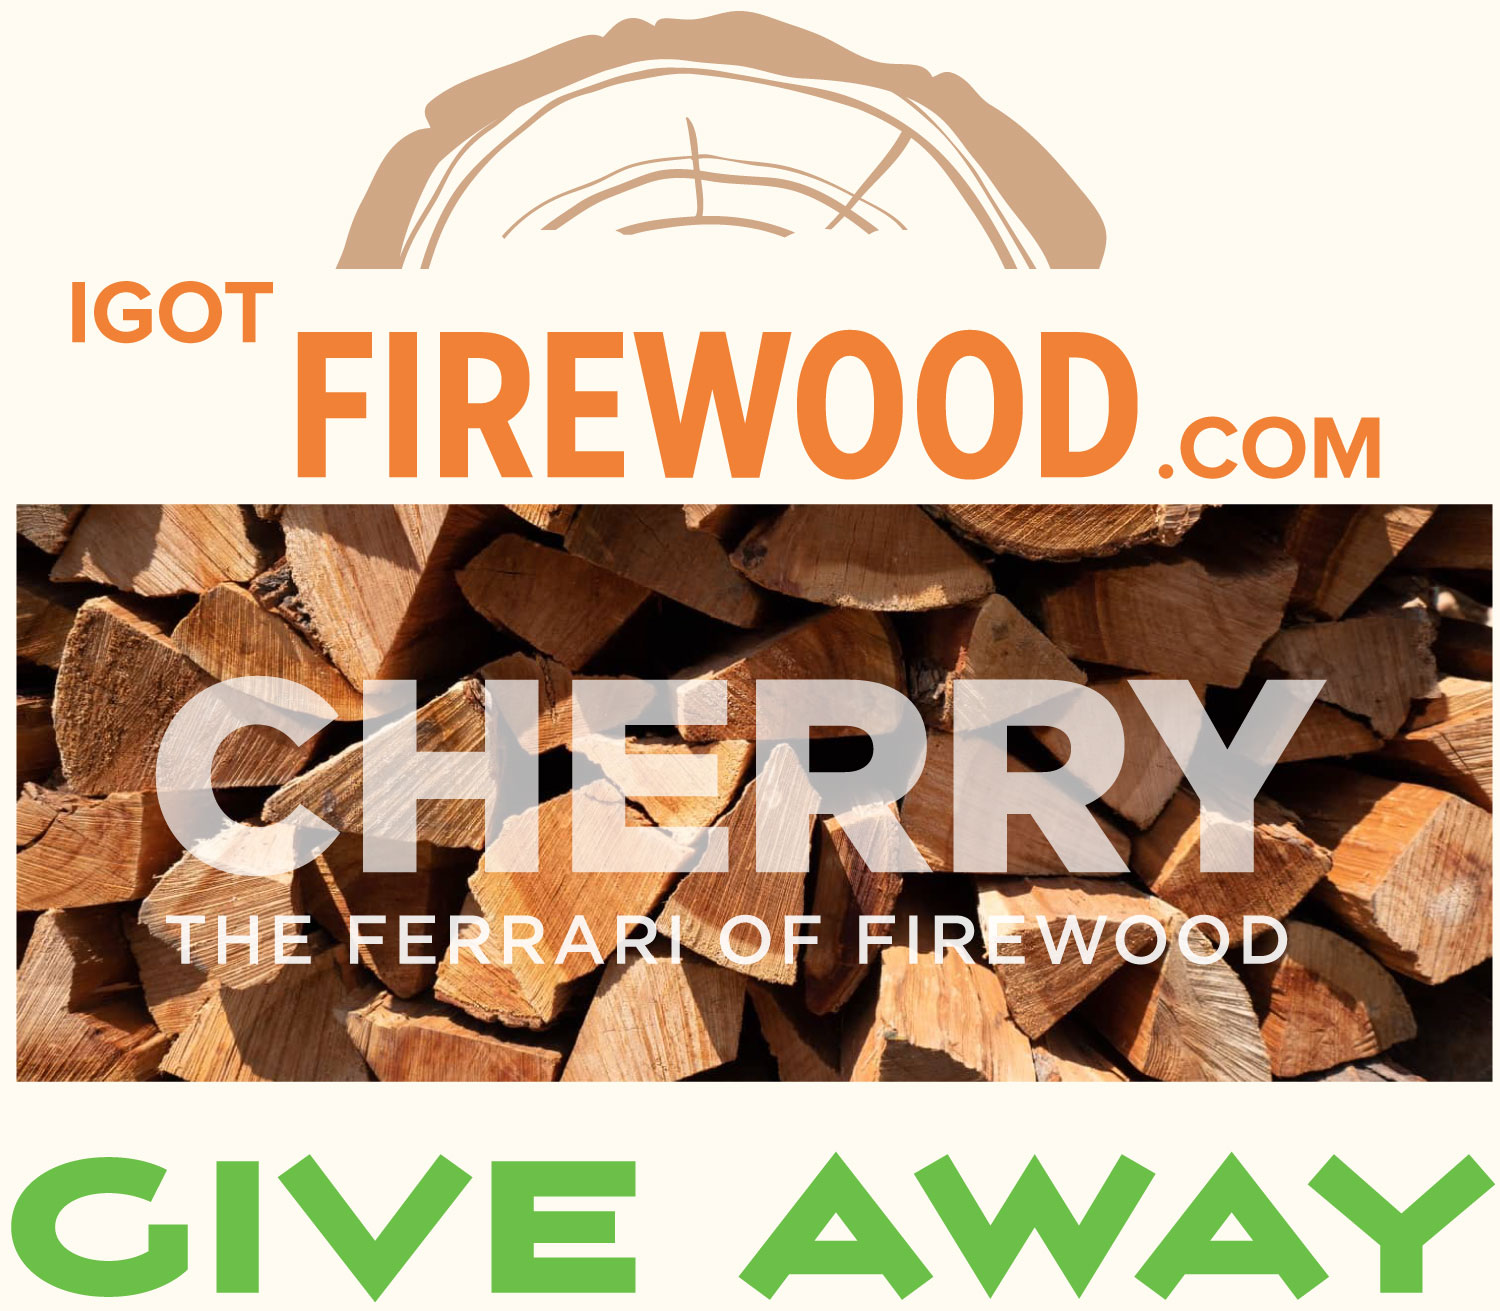 firewood-cherry-give-away.jpg